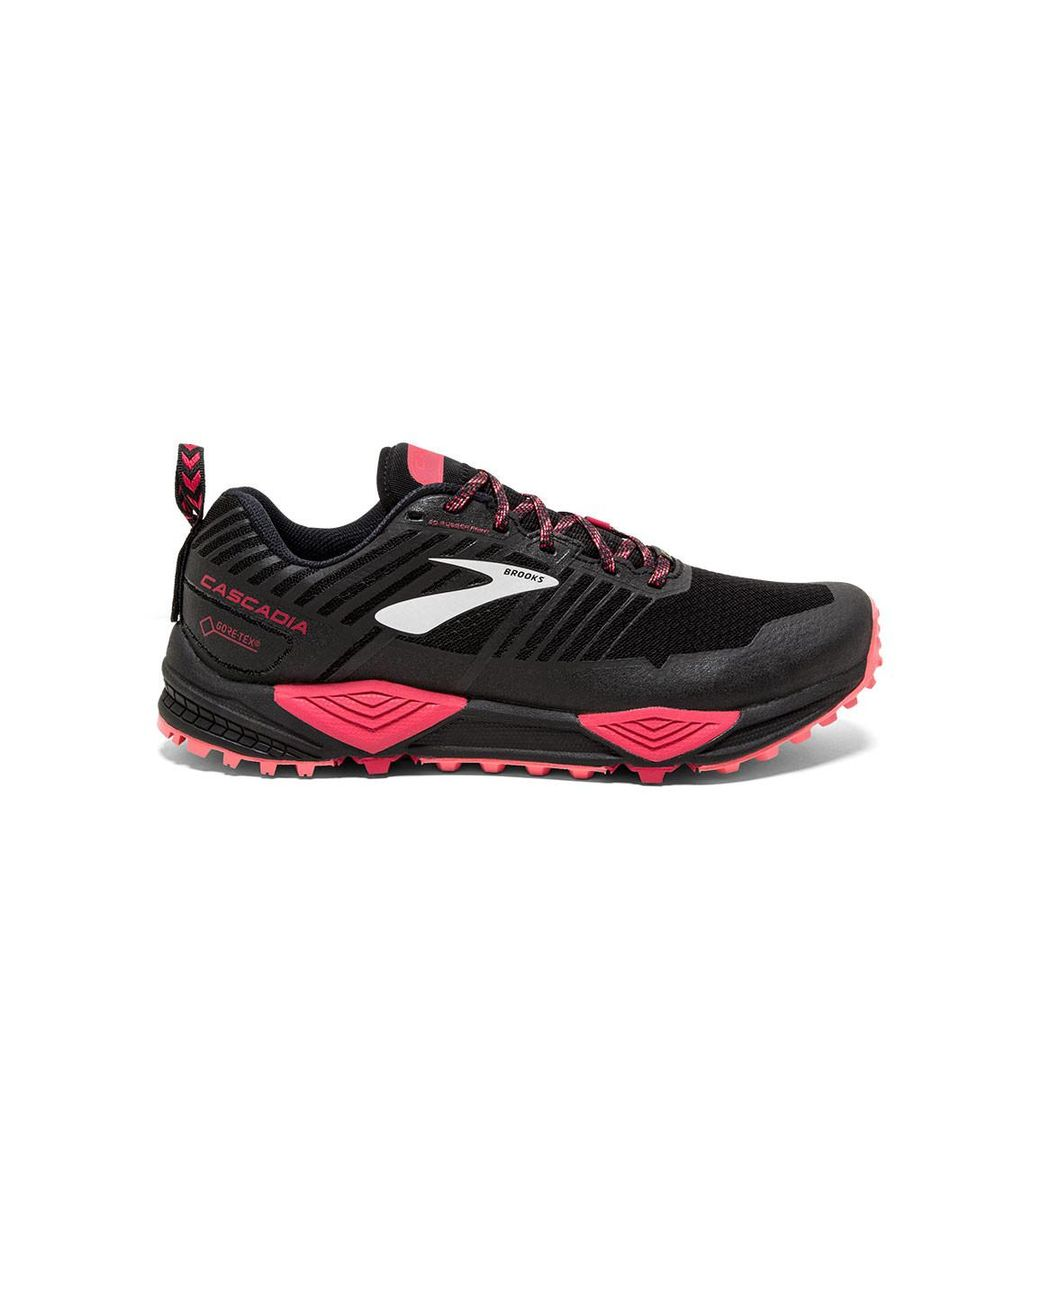 97502e90e92 Long-Touch to Zoom. Long-Touch to Zoom. 1  2  3  4  5  6. Brooks - Black  Cascadia 13 Gtx Trail Running Shoe - Lyst ...